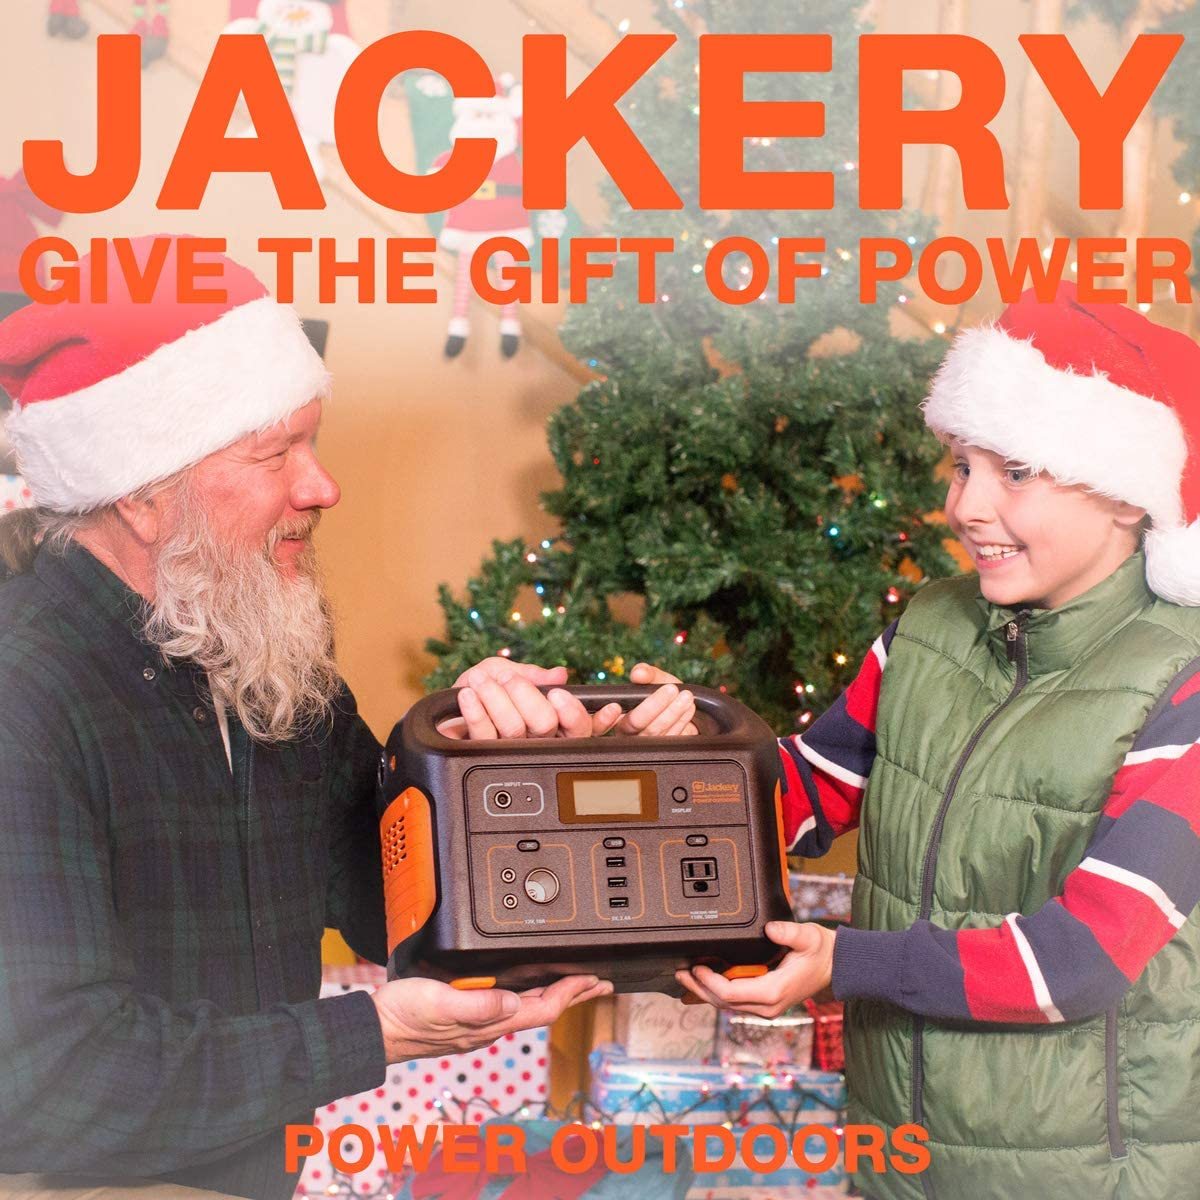 Jackery Portable Power Station Explorer 500, 518Wh Outdoor Mobile Lithium Battery Pack with 110V 500W AC Outlet, Solar-Ready Generator Solar Panel Optional RV Battery CPAP Power Outage Emergency Kit